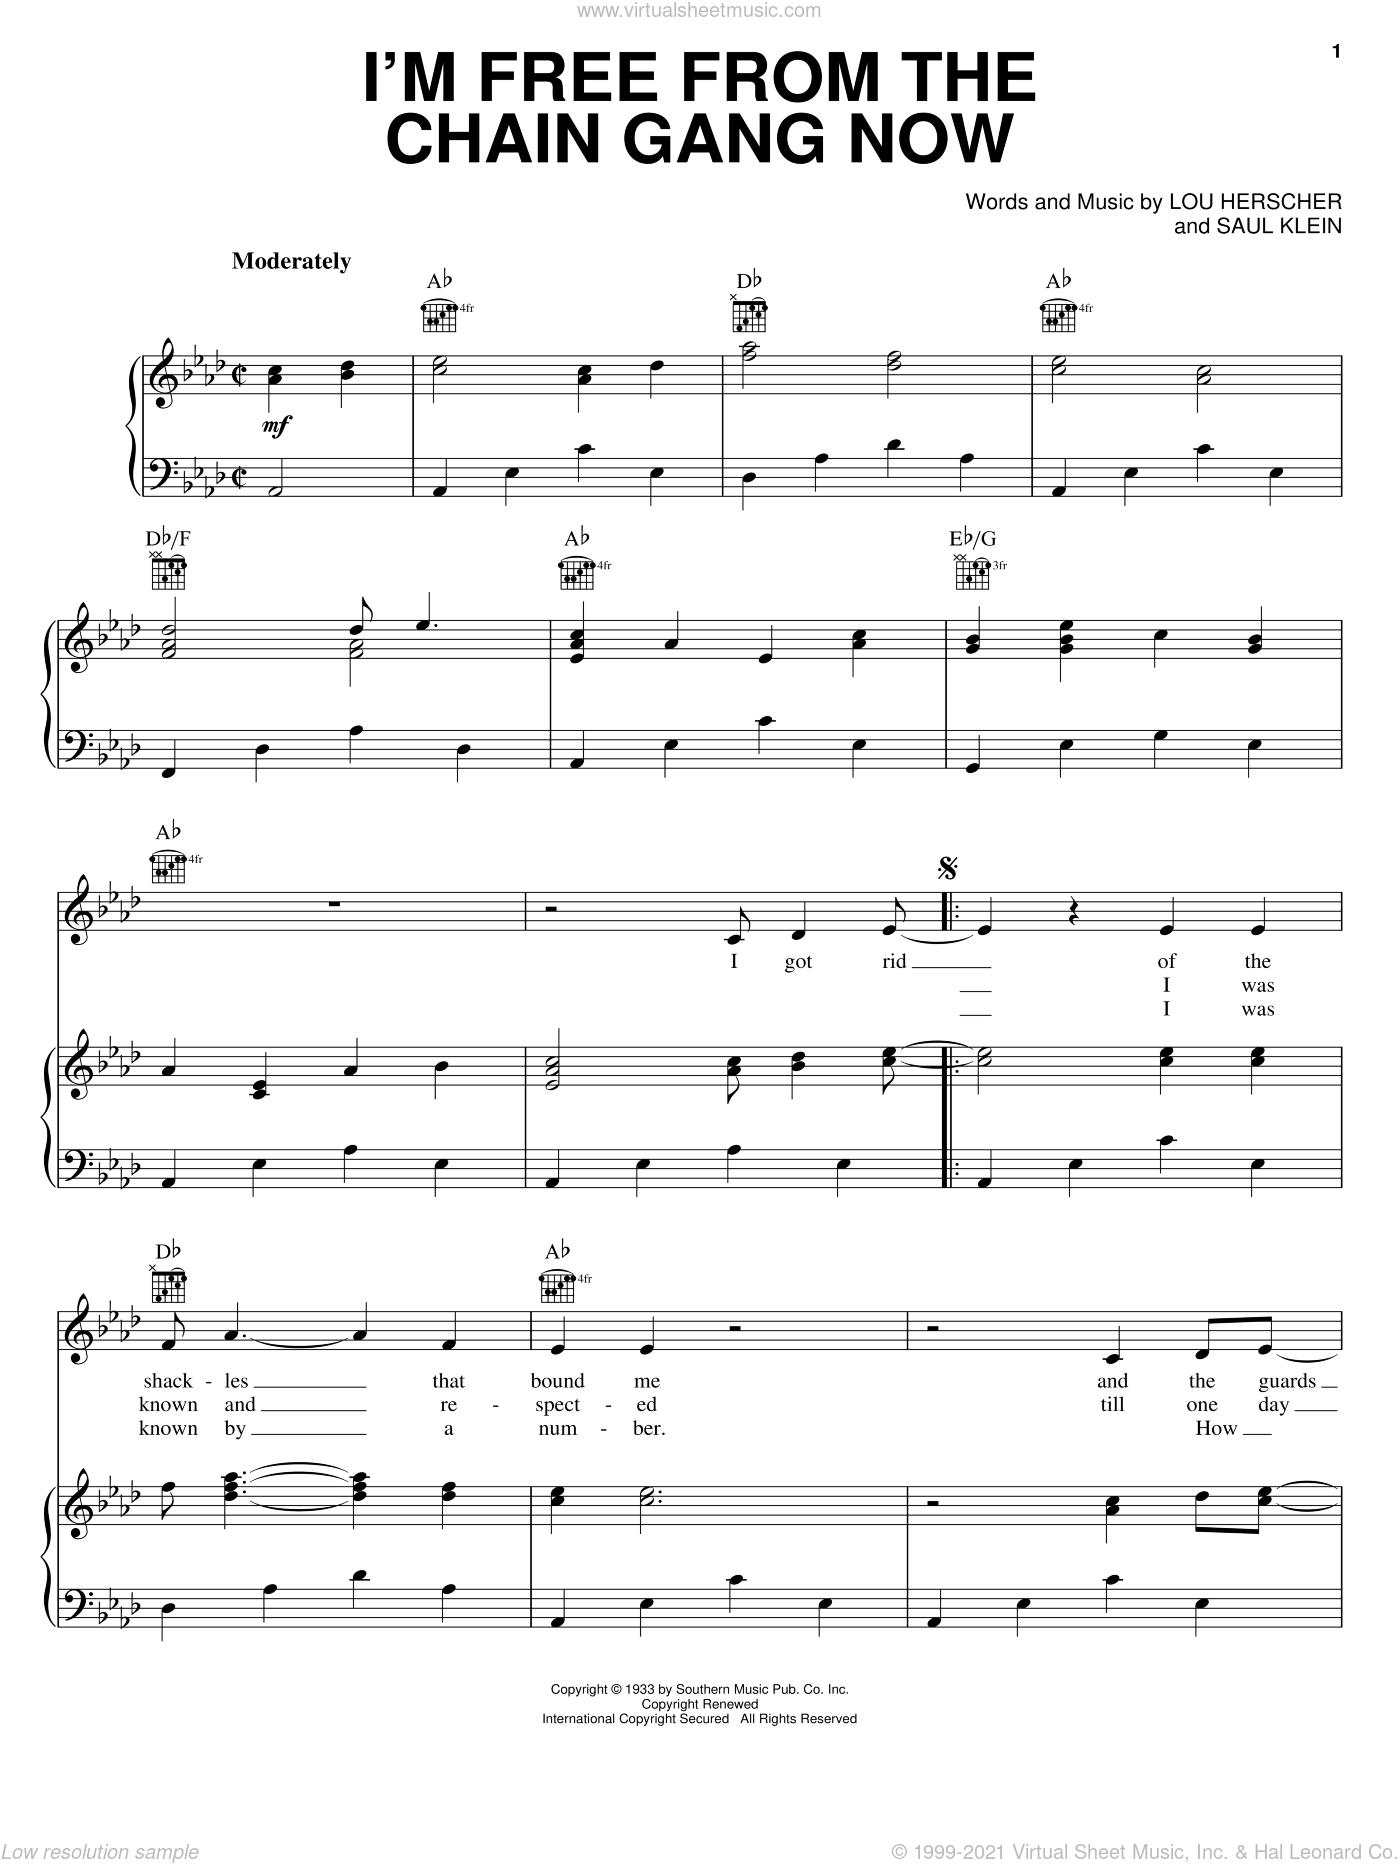 I'm Free From The Chain Gang Now sheet music for voice, piano or guitar by Johnny Cash, Jimmie Rodgers, Lou Herscher and Saul Klein, intermediate skill level